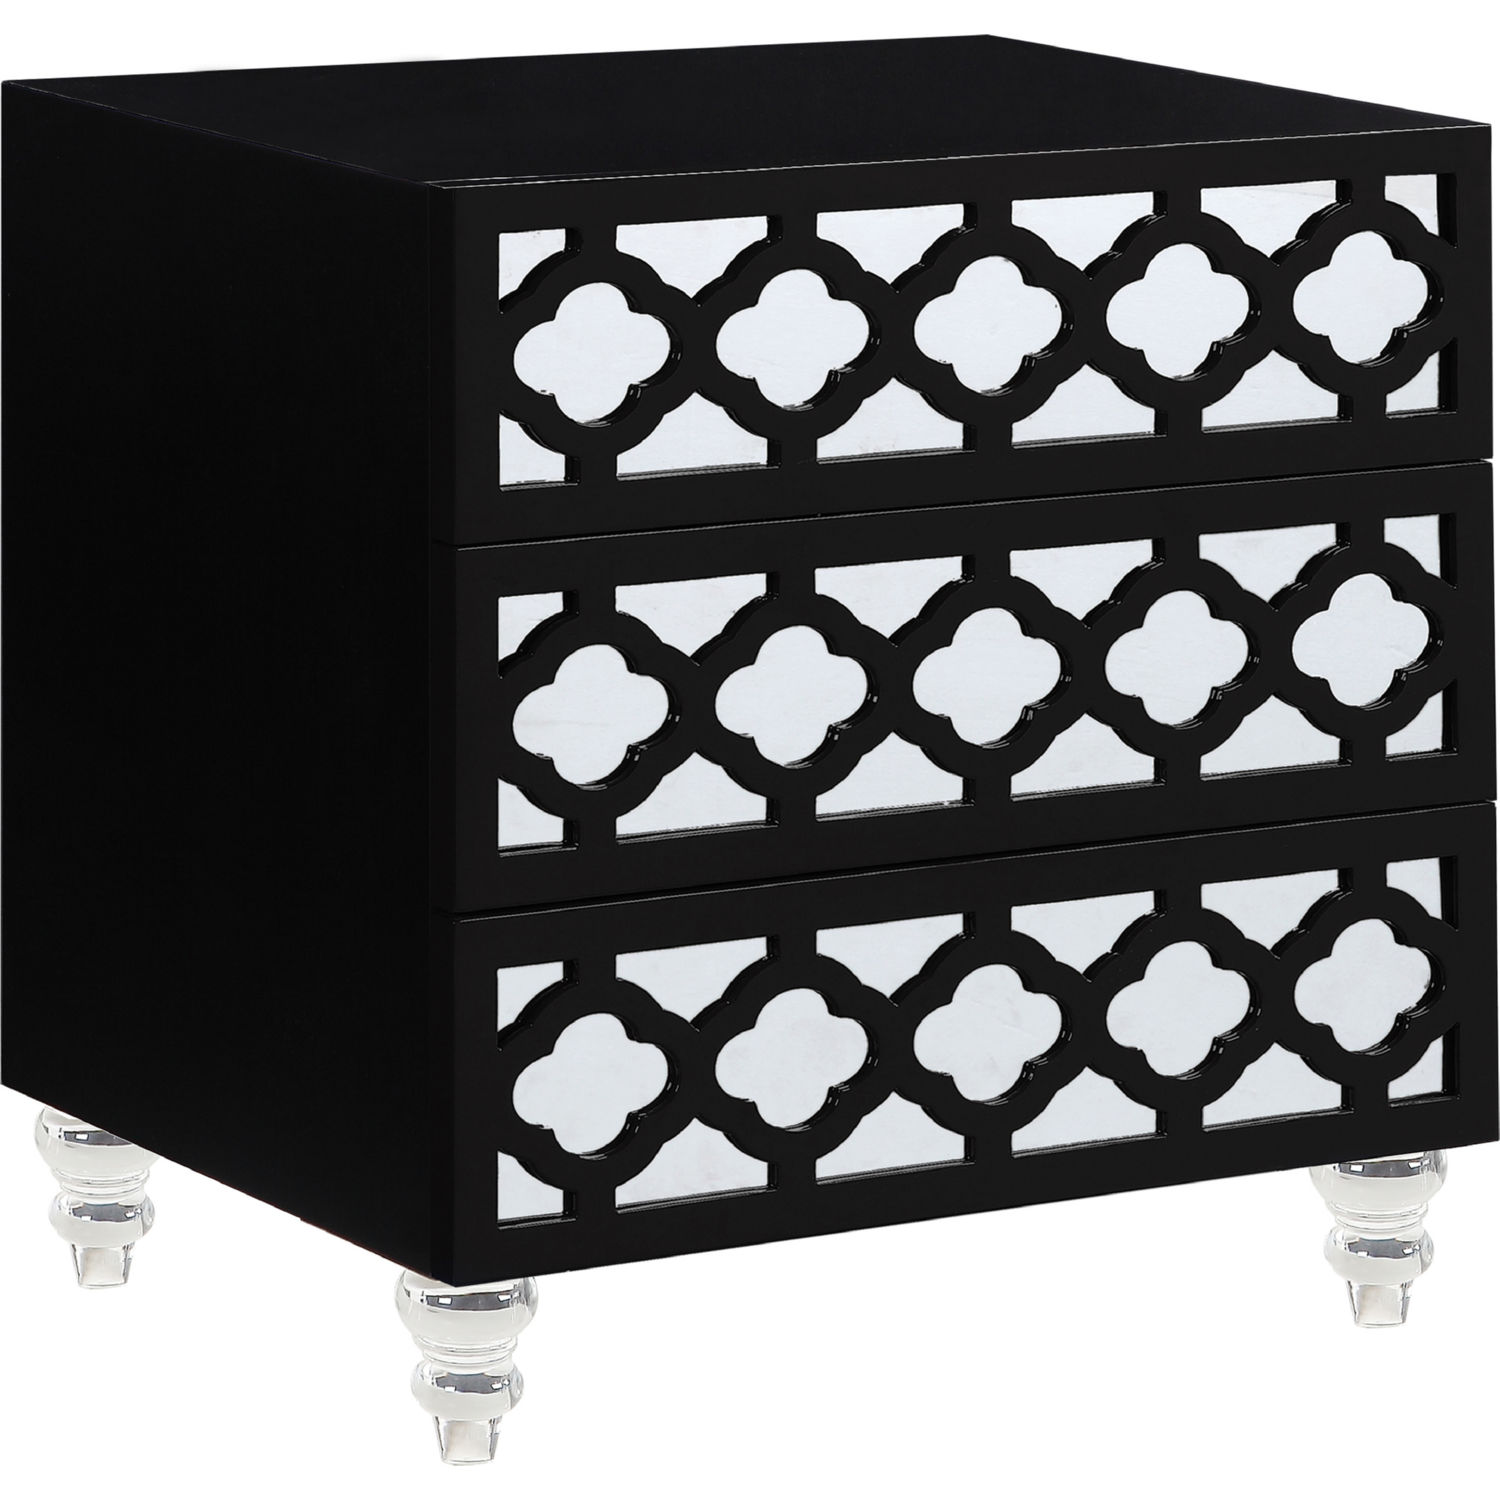 Bergamo Nightstand Side Table In High Gloss Black Lacquer On Acrylic Legs By Chic Home